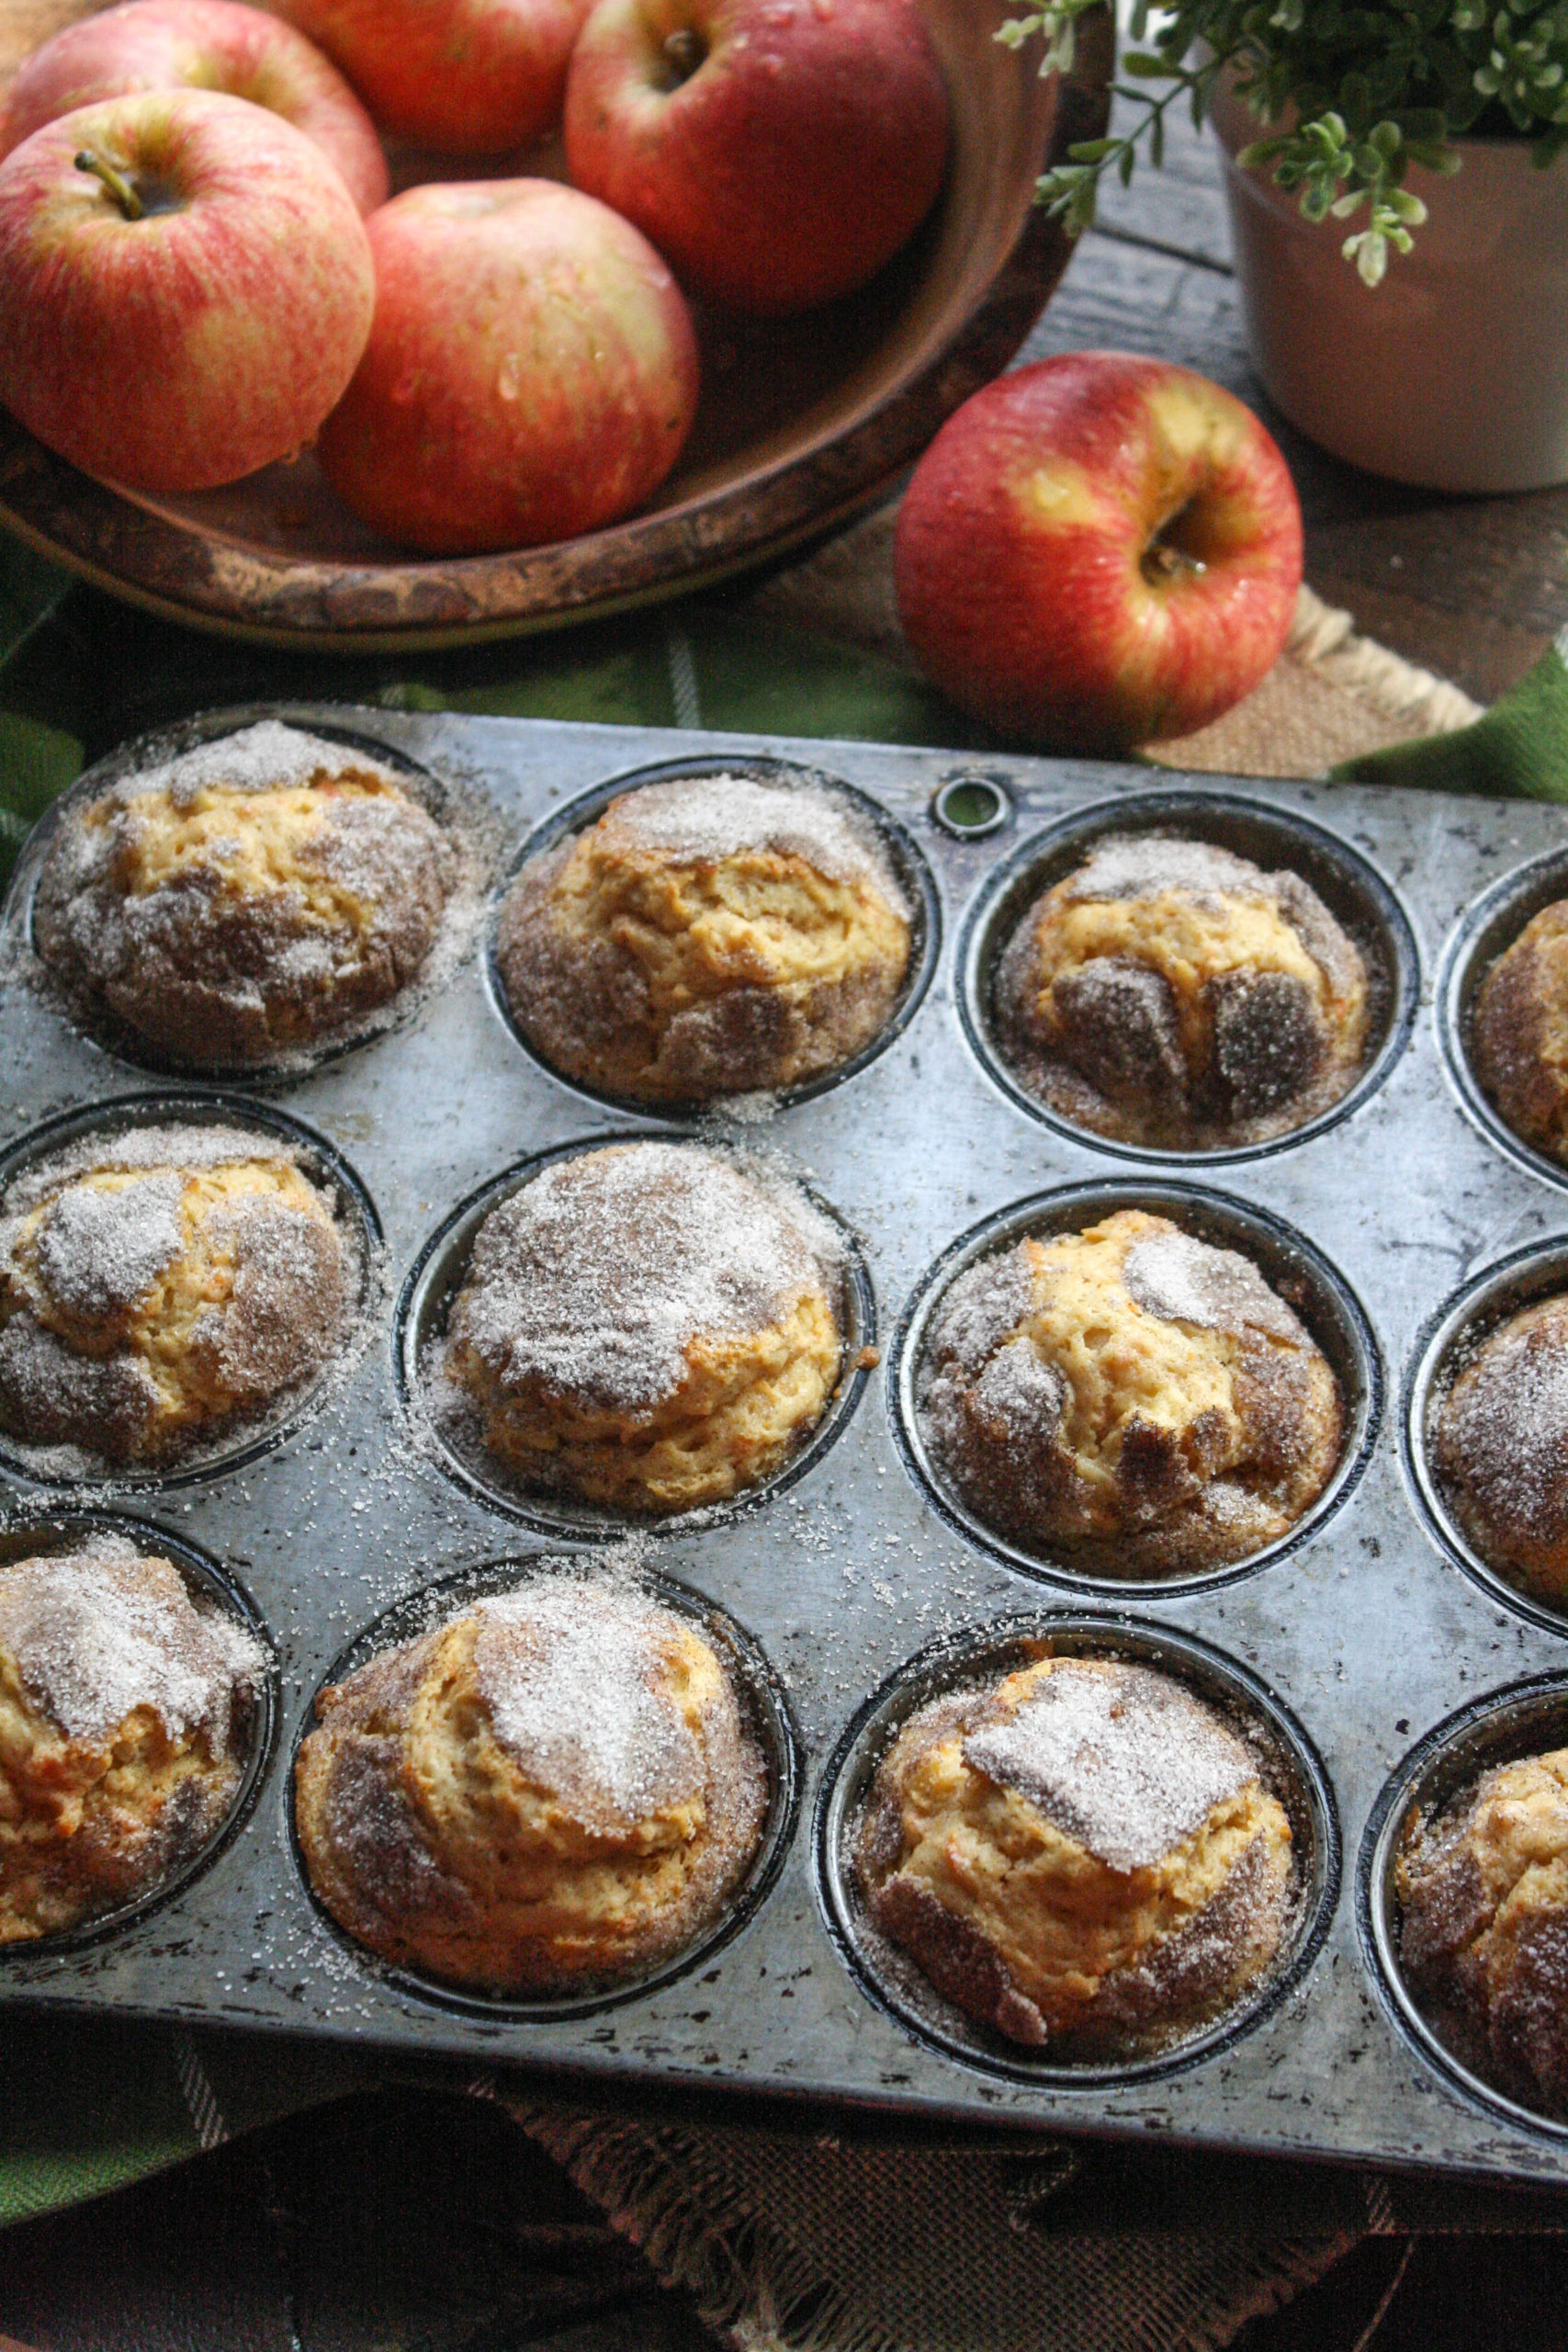 Cinnamon-Sugar Apple & Sweet Potato Muffins are a lovely treat or snack for the season!